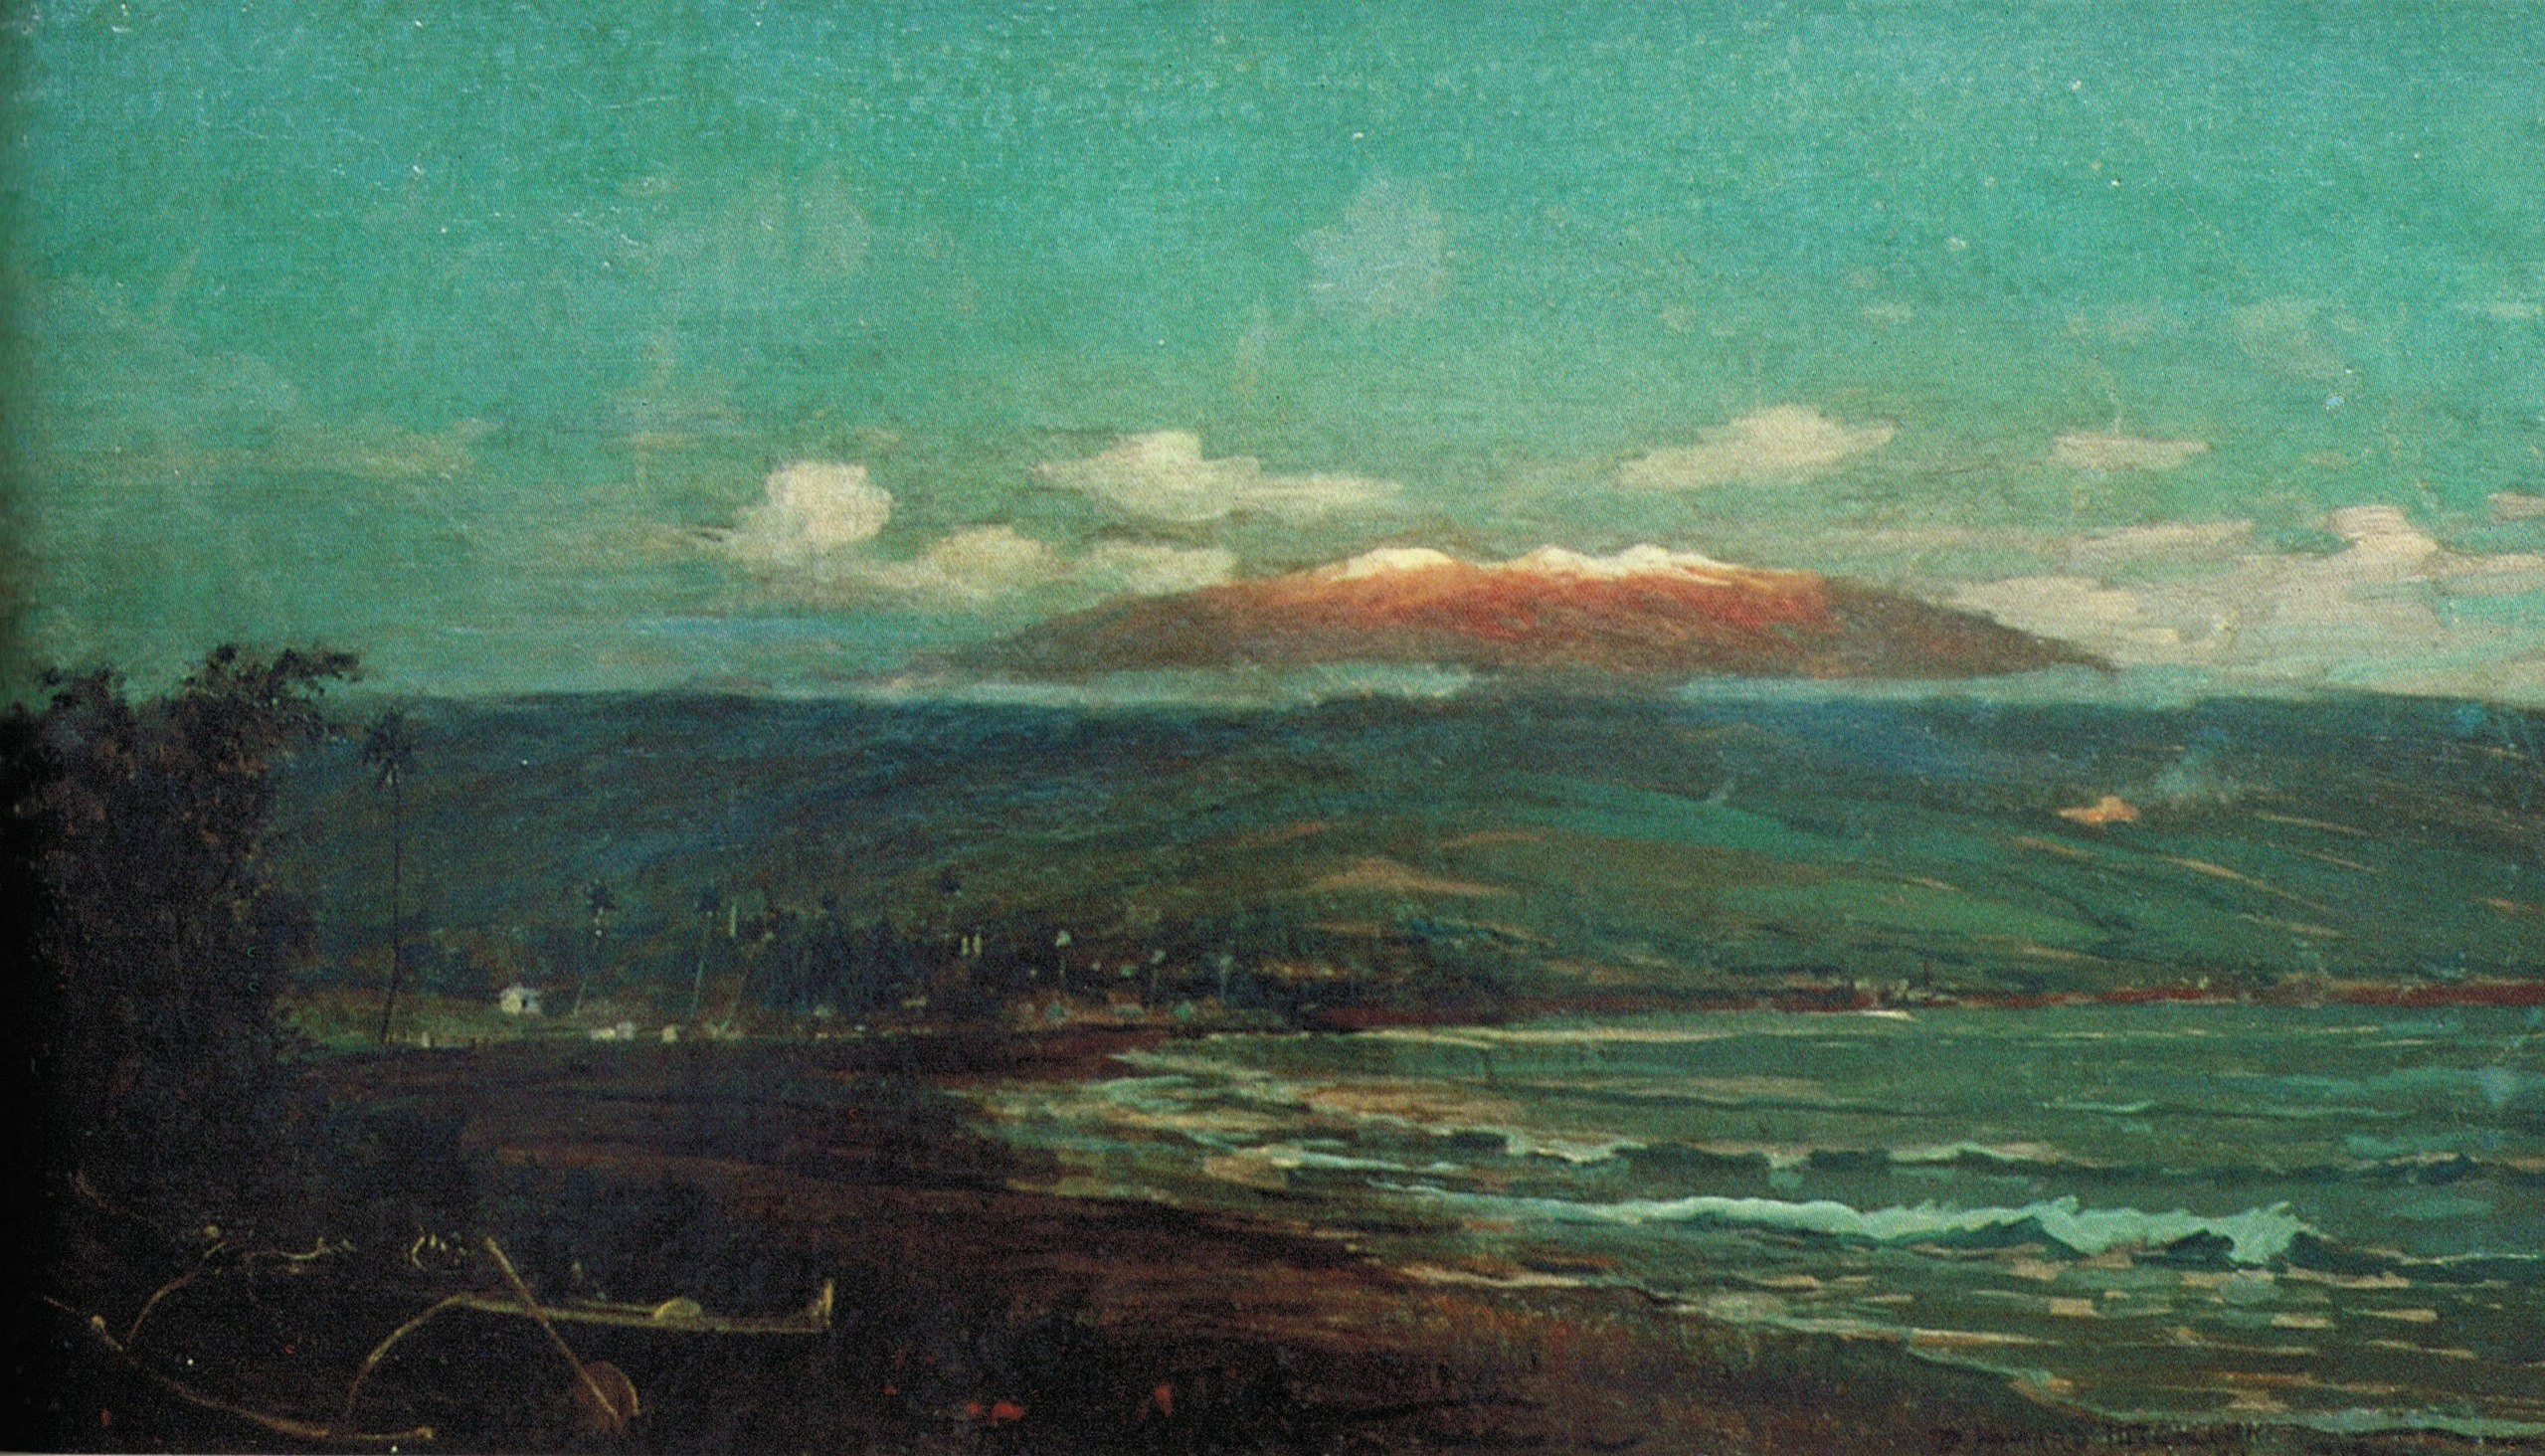 2560px-'Mauna_Kea_from_Hilo_Bay'_by_D._Howard_Hitchcock,_1887